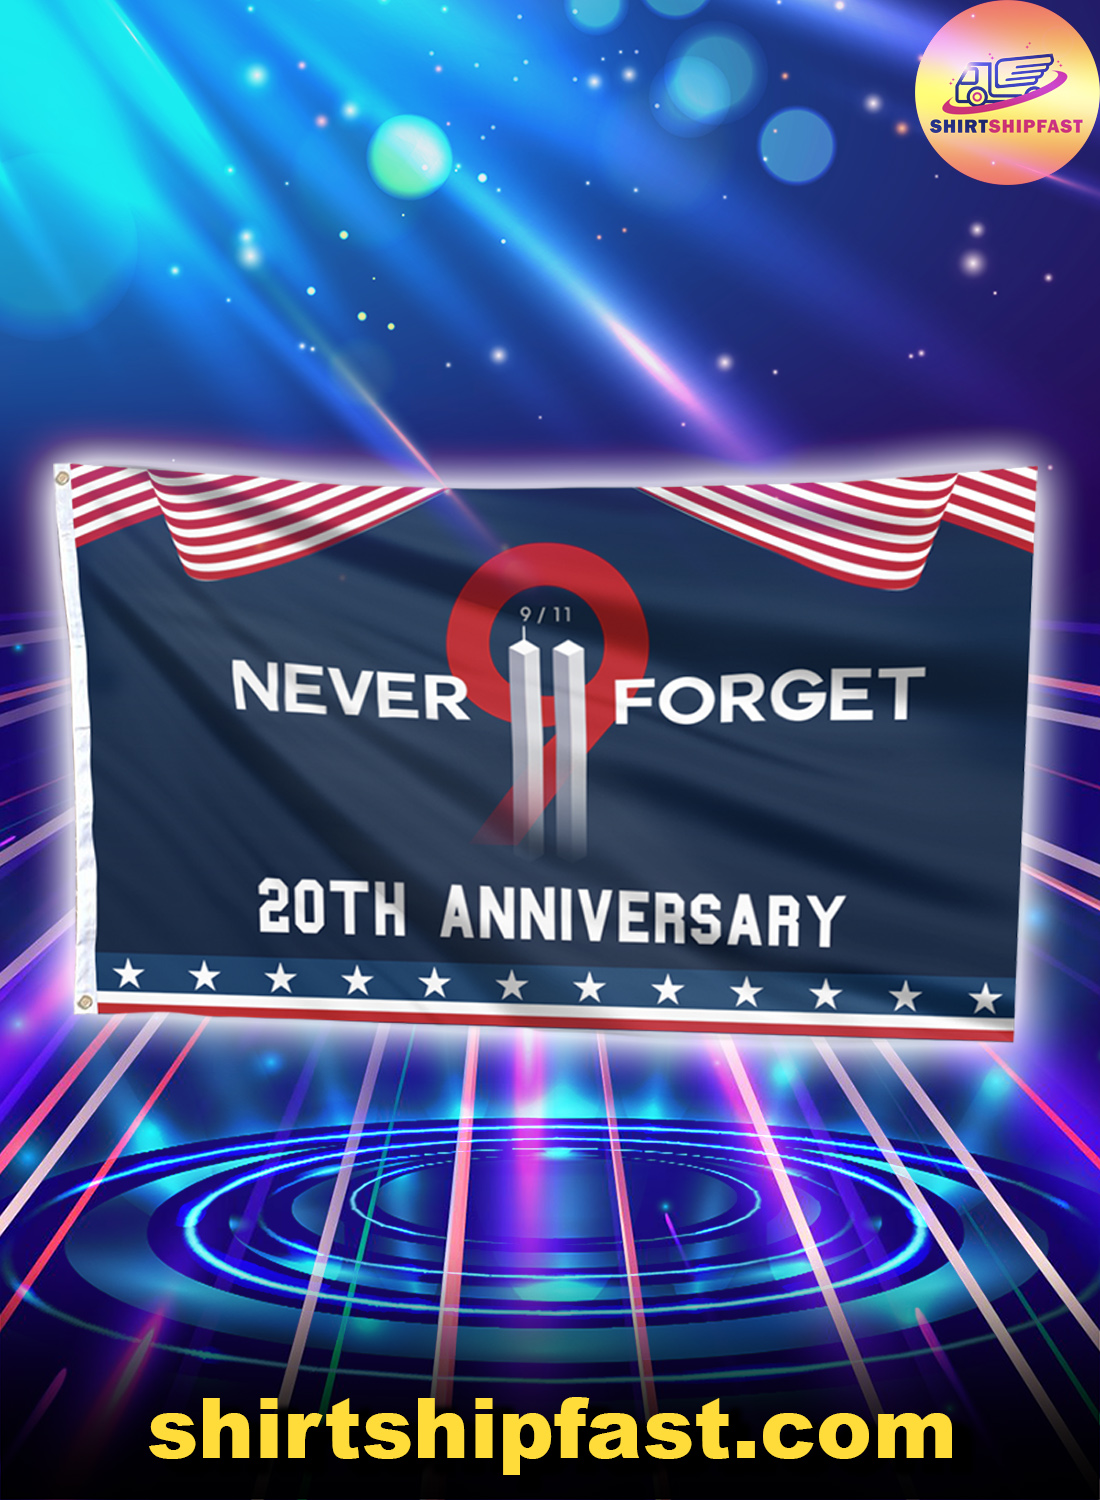 9 11 Never forget 20th anniversary flag - Picture 1